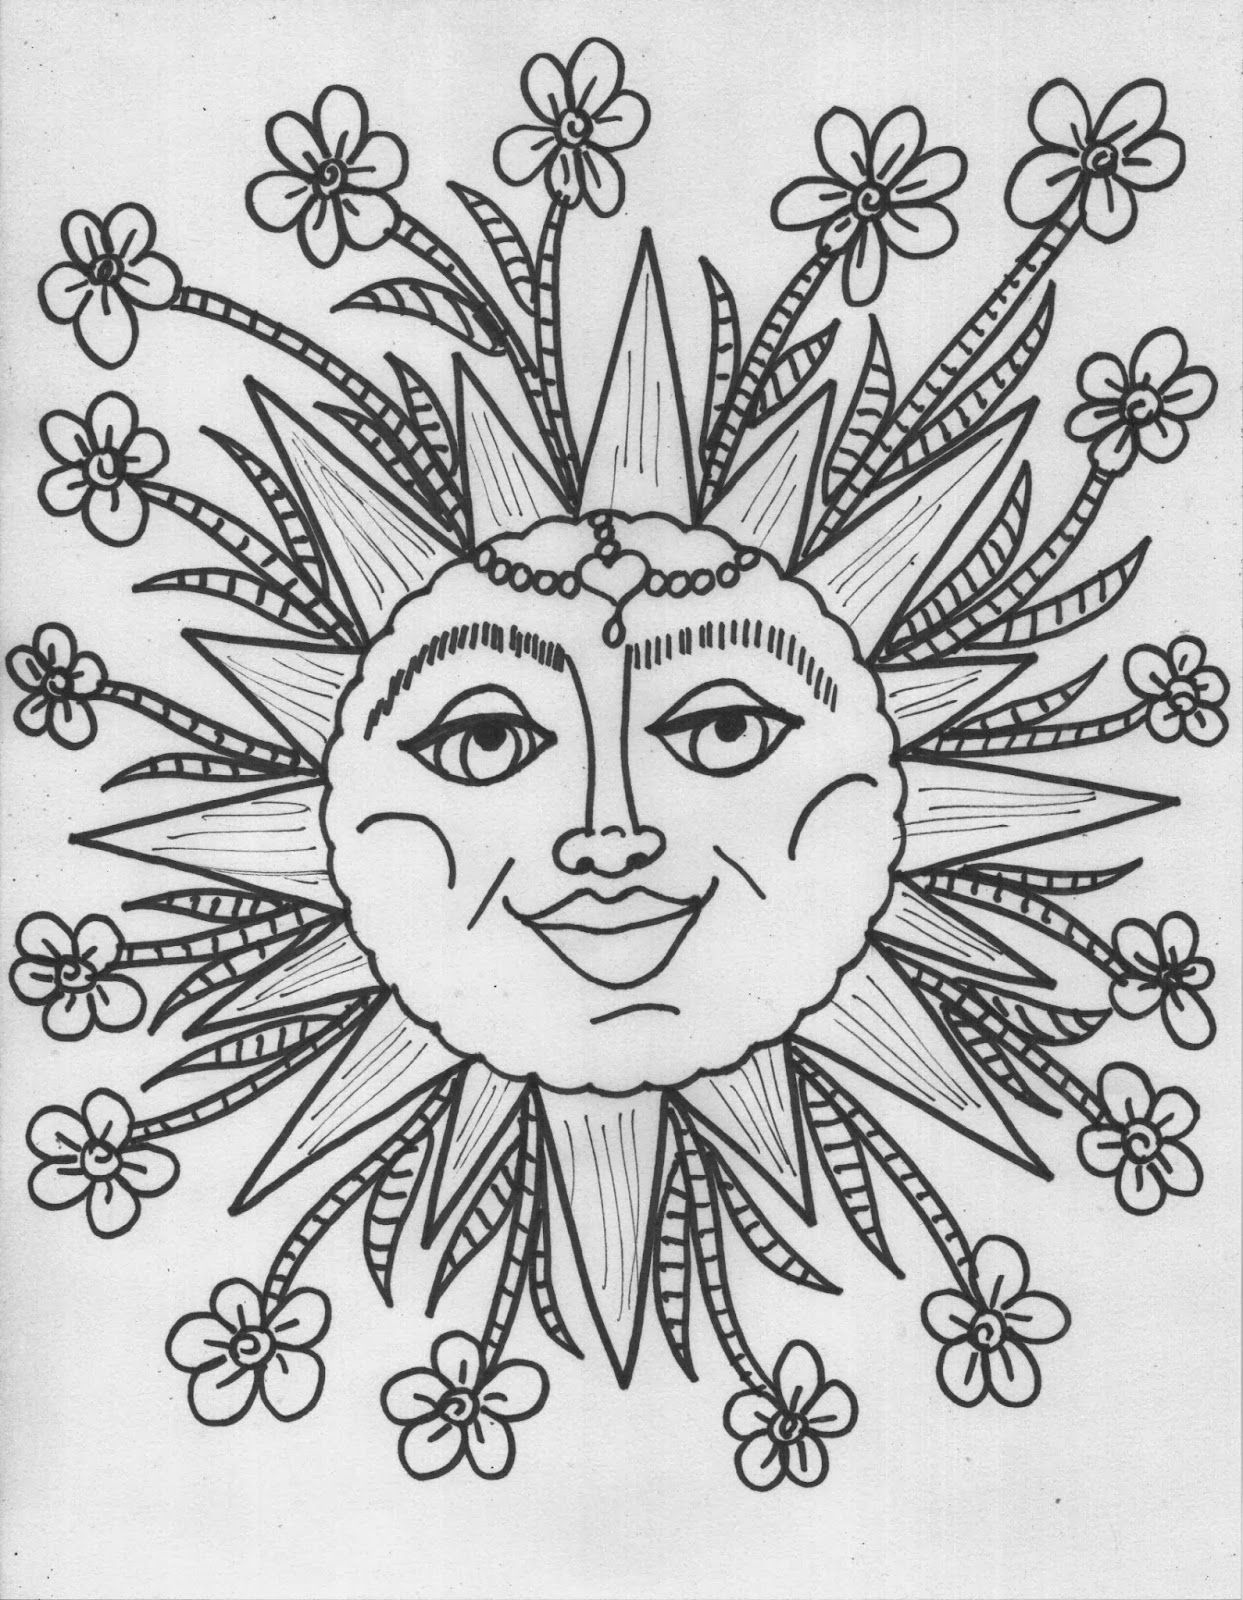 Hippie Coloring Pages Bing Images Coloring Pages Pinterest - Hippie-coloring-pages